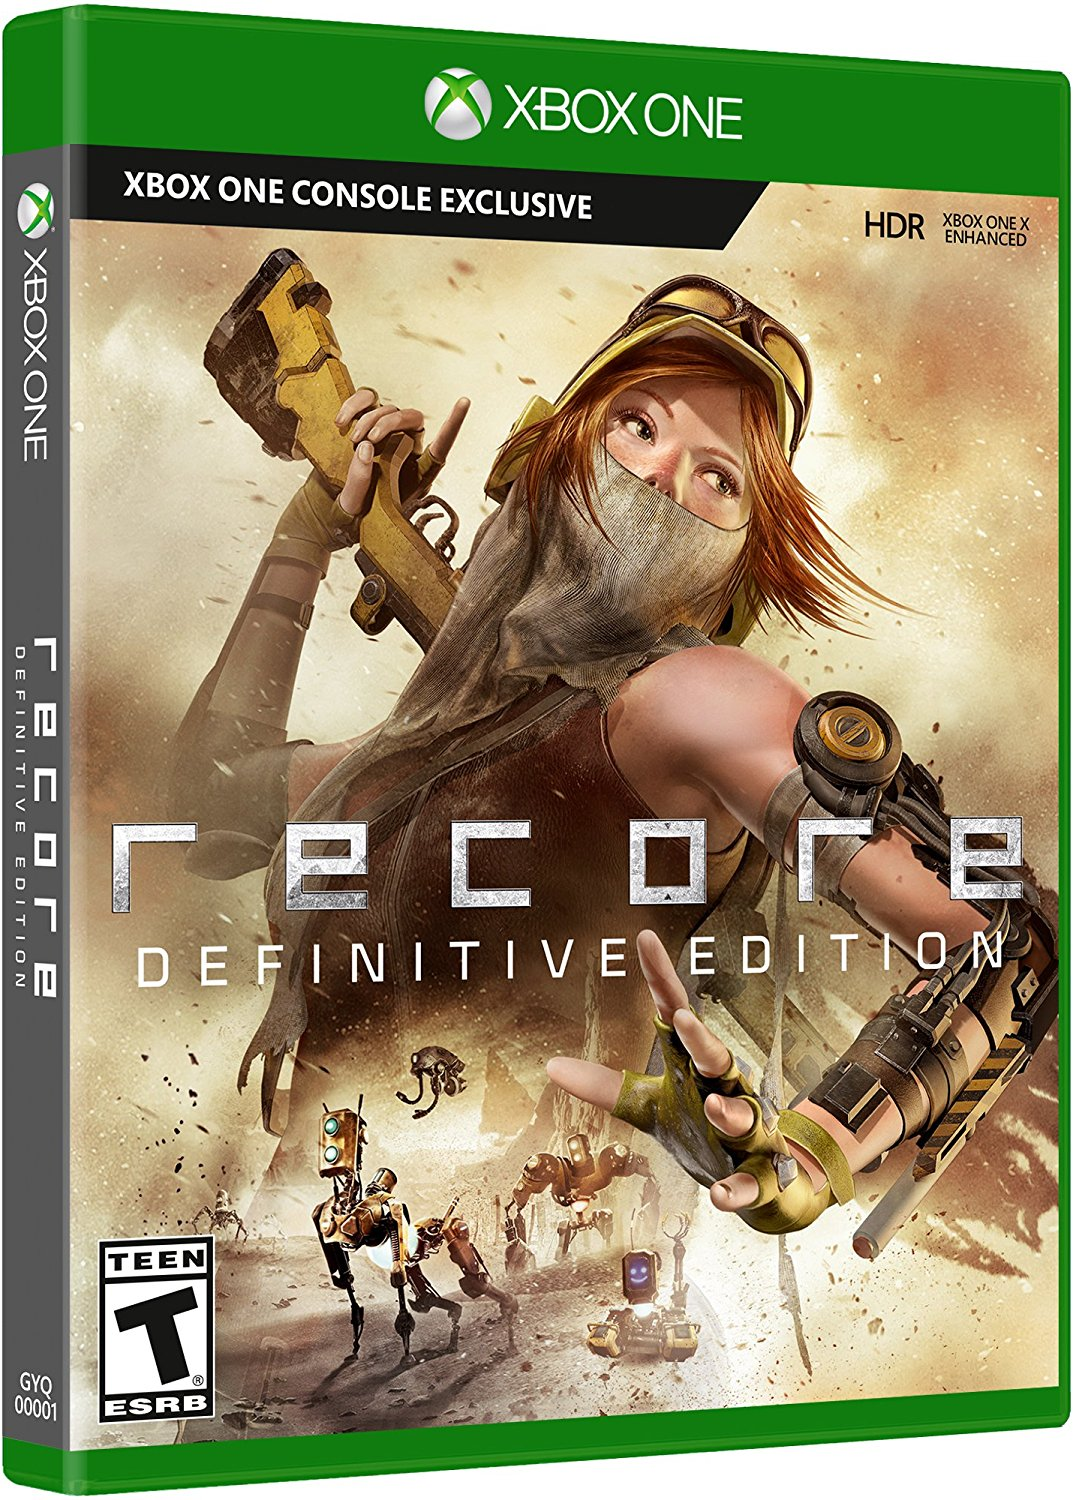 RECORE Definitive Edition - Xone